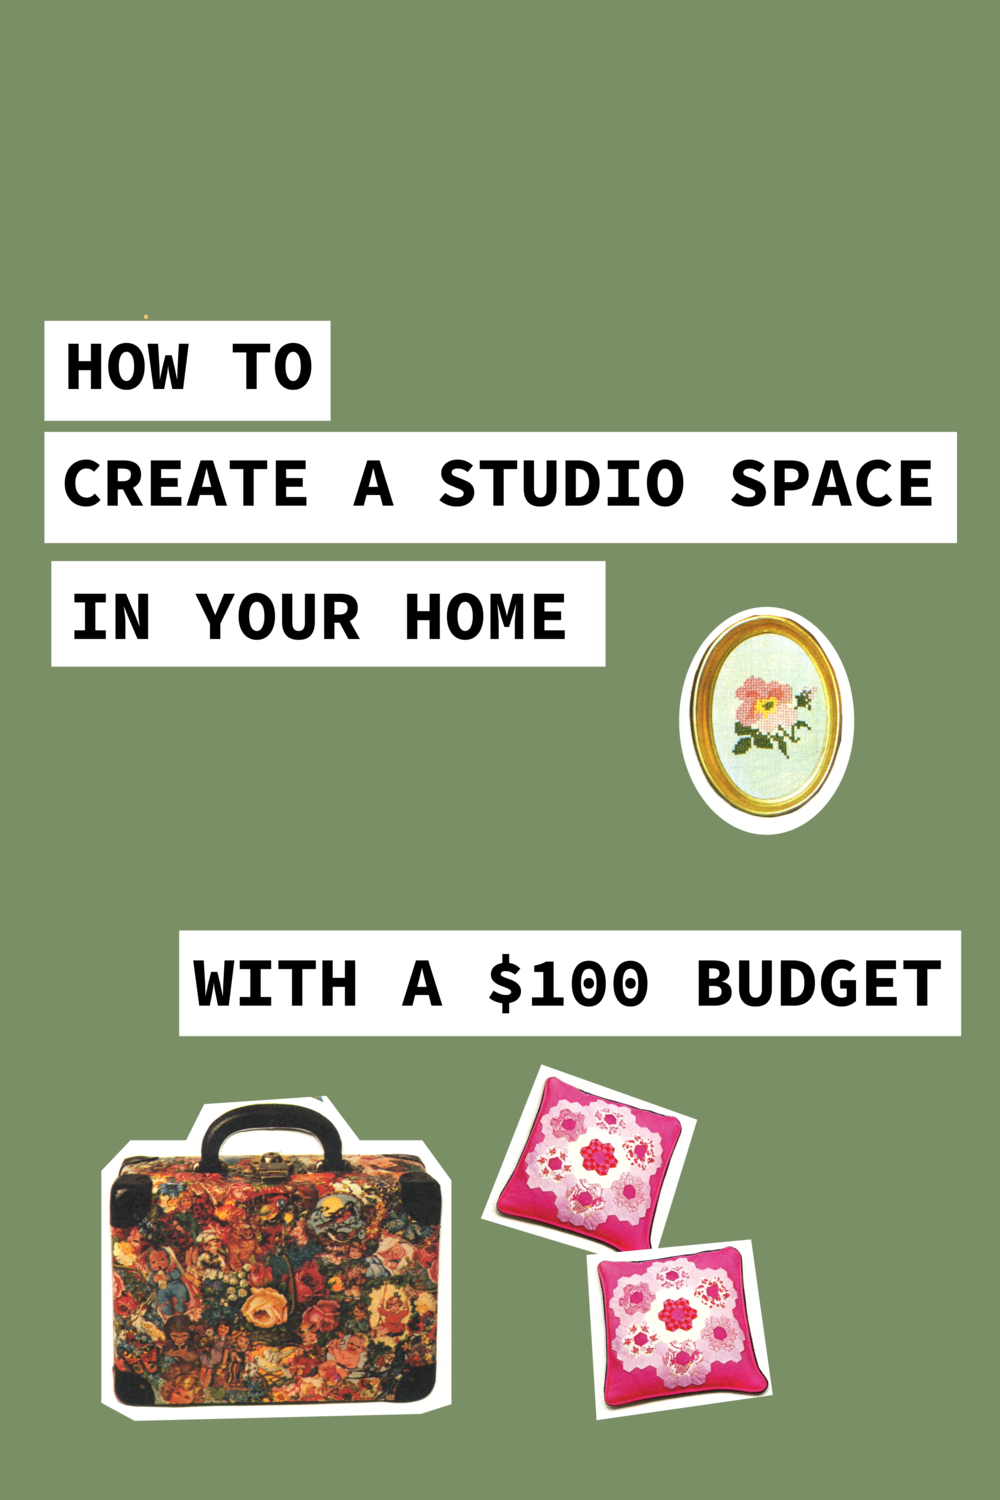 How To Create A Studio Space In Your Home With A $100 Budget